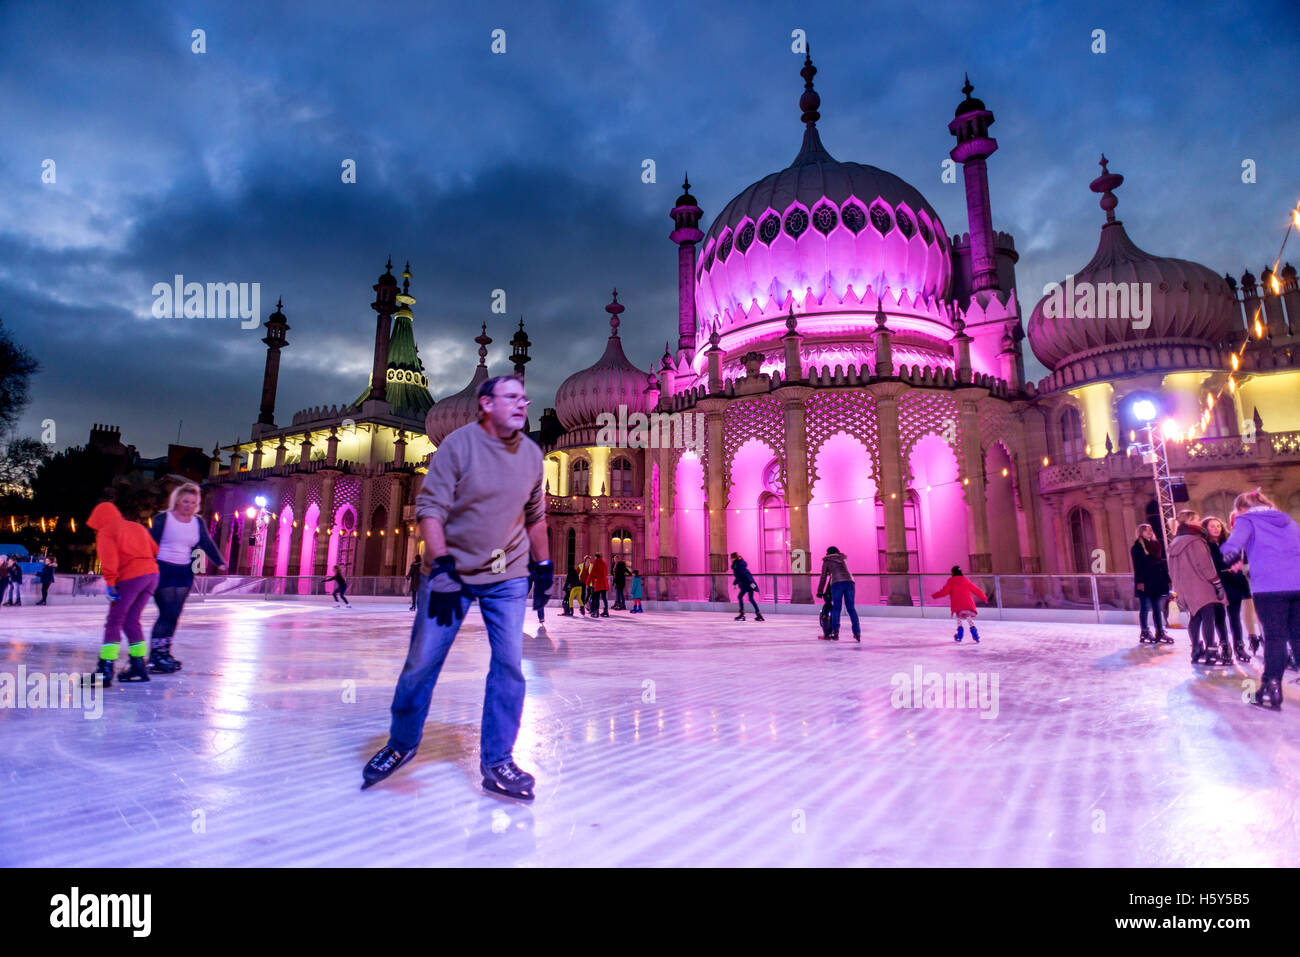 Crowds enjoying the Brighton Pavilion Ice Rink, erected for the Christmas period each year. - Stock Image